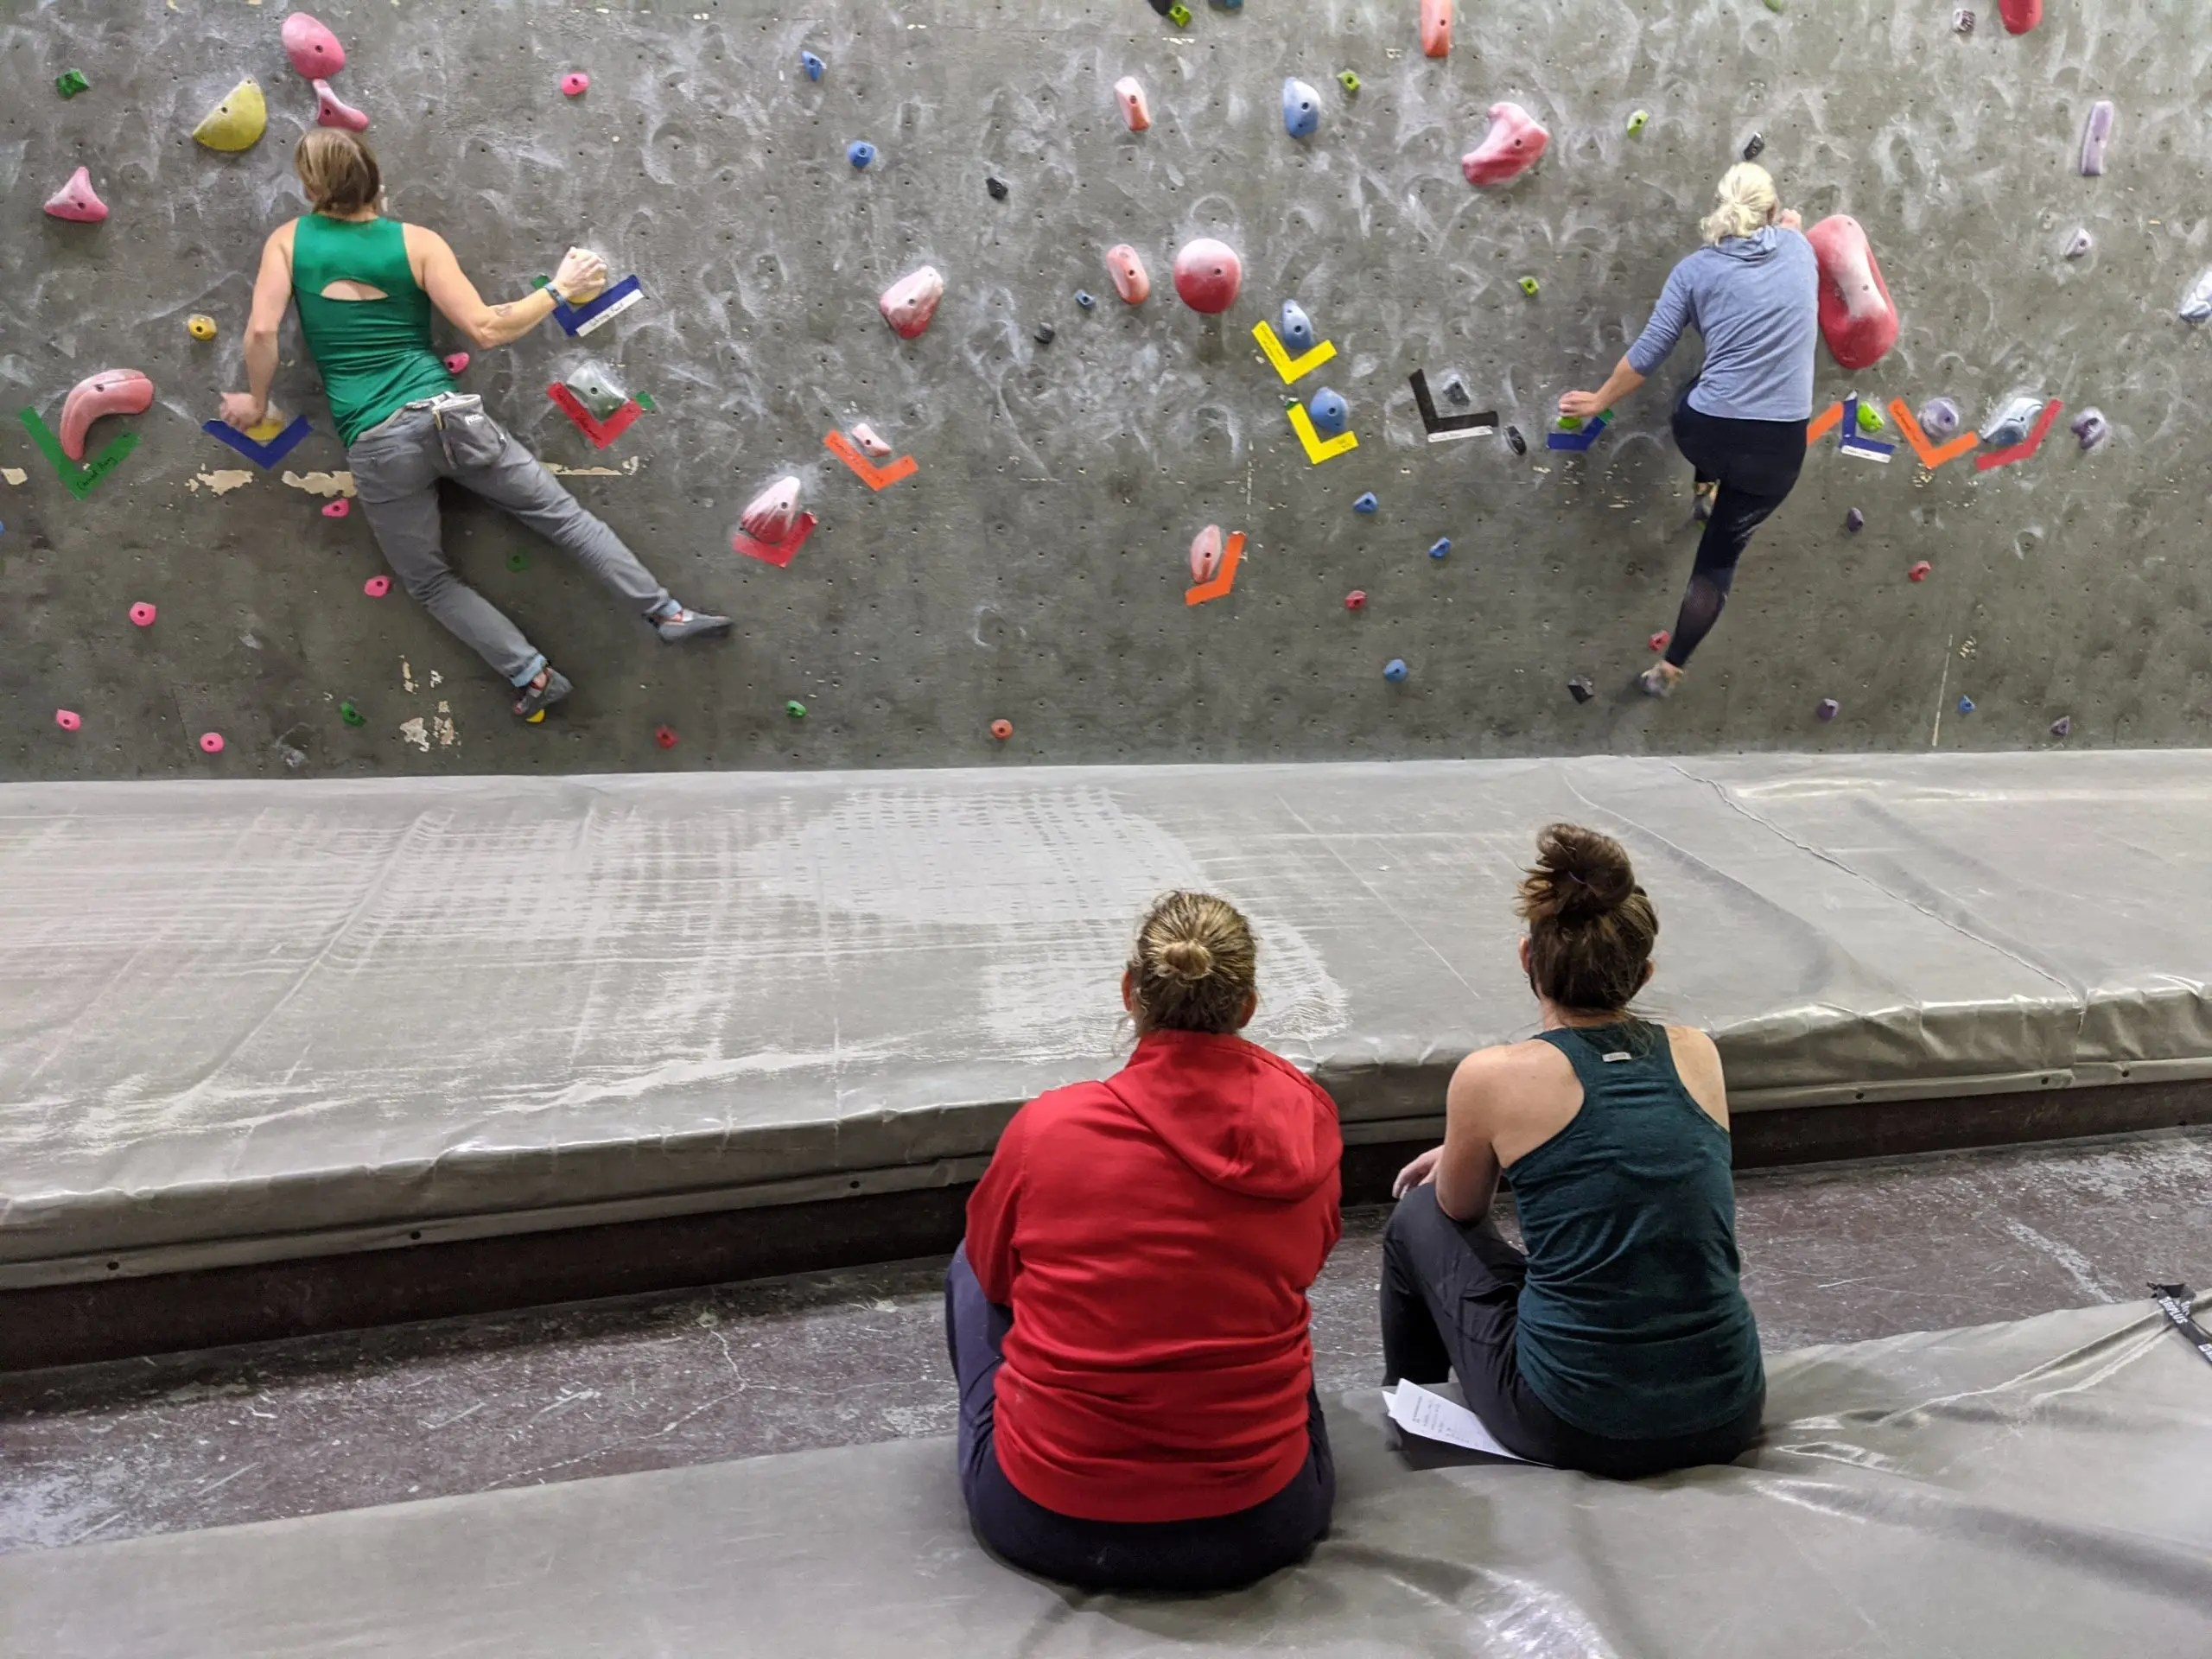 two climbers climbing at night league